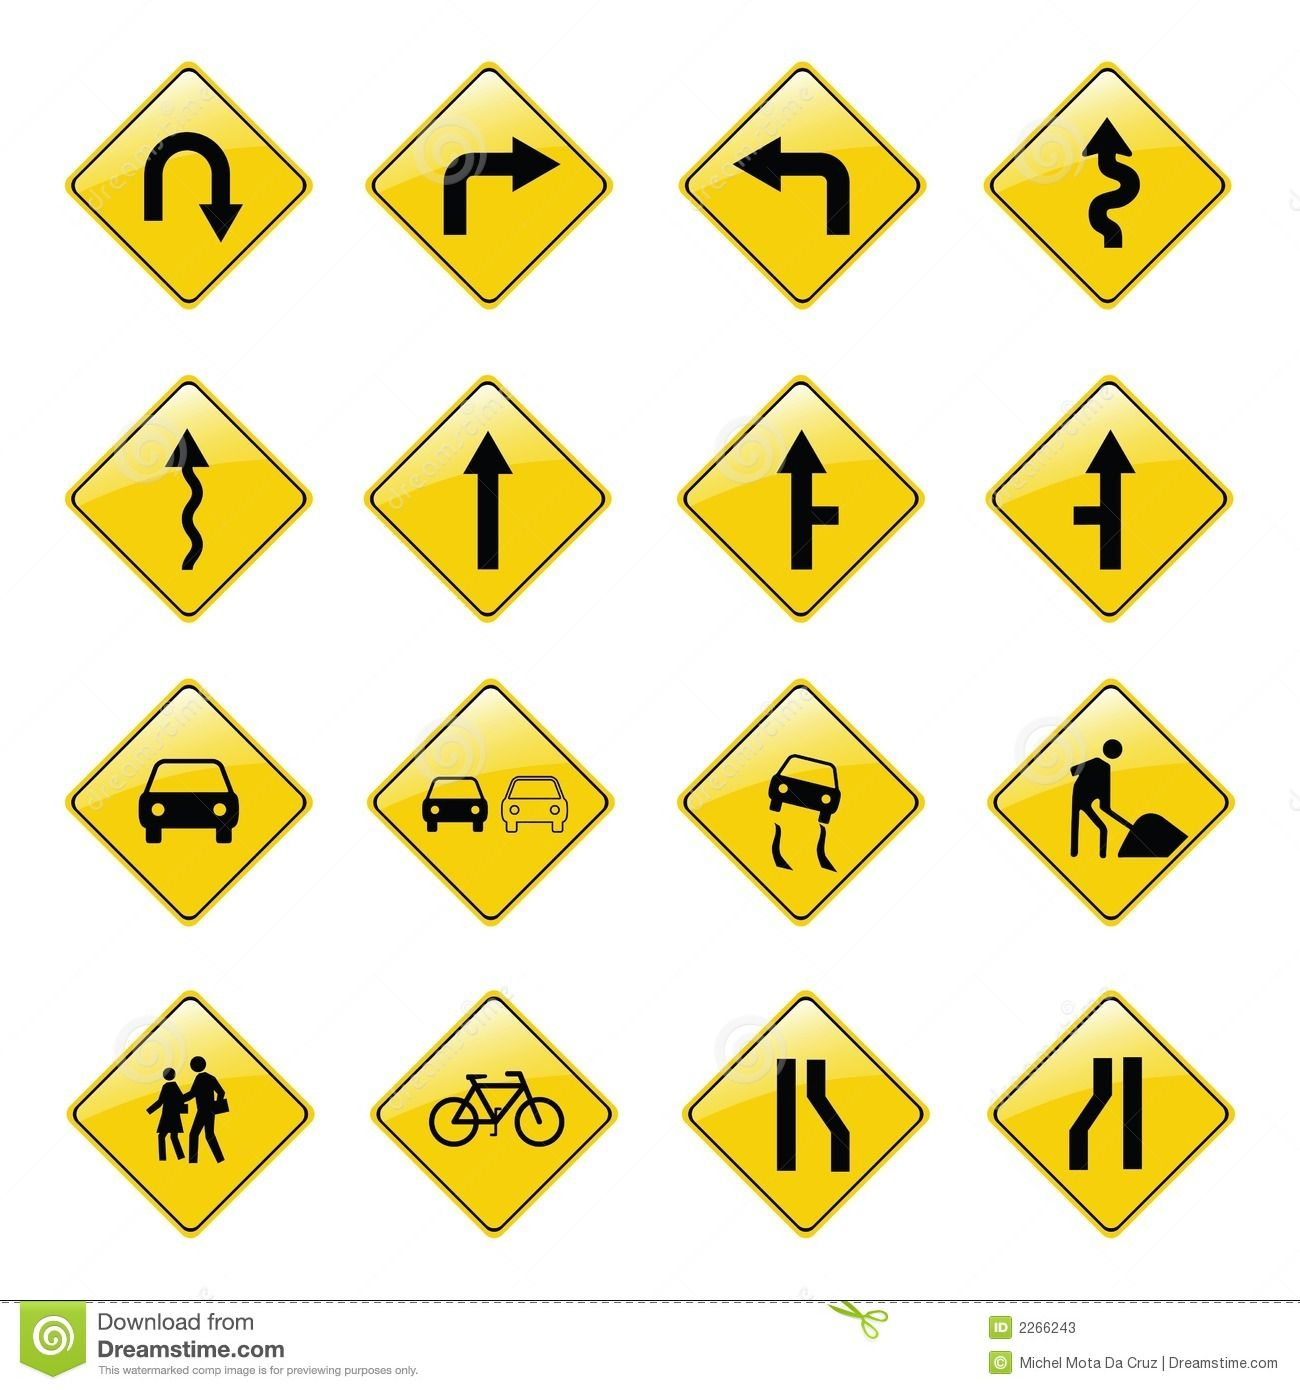 Traffic Signs In Yellow To Attract Attention